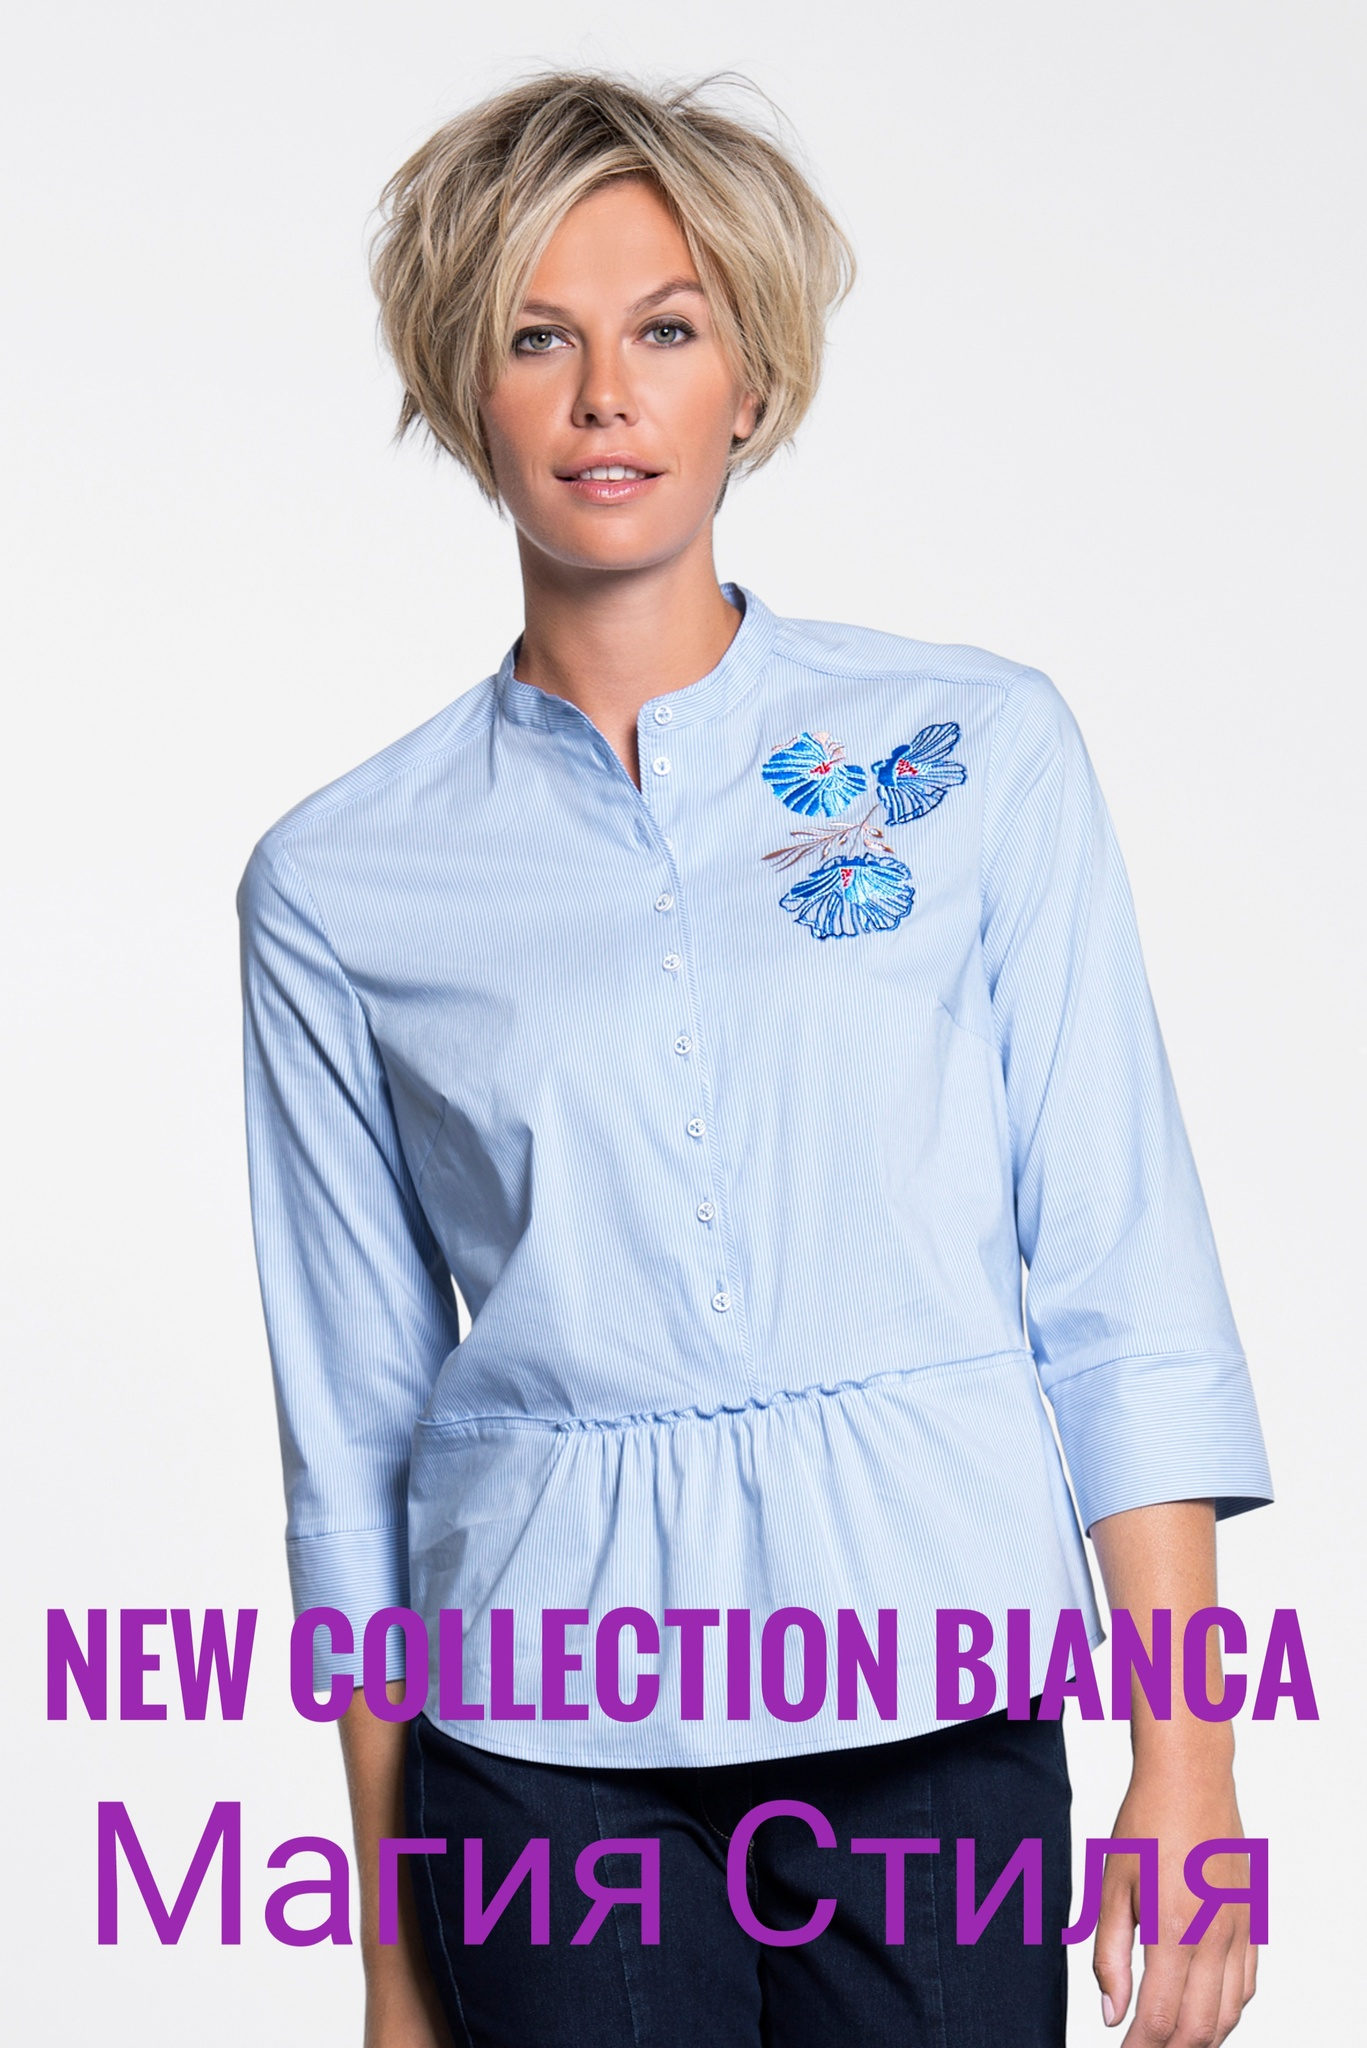 New collection Bianca весна 2018